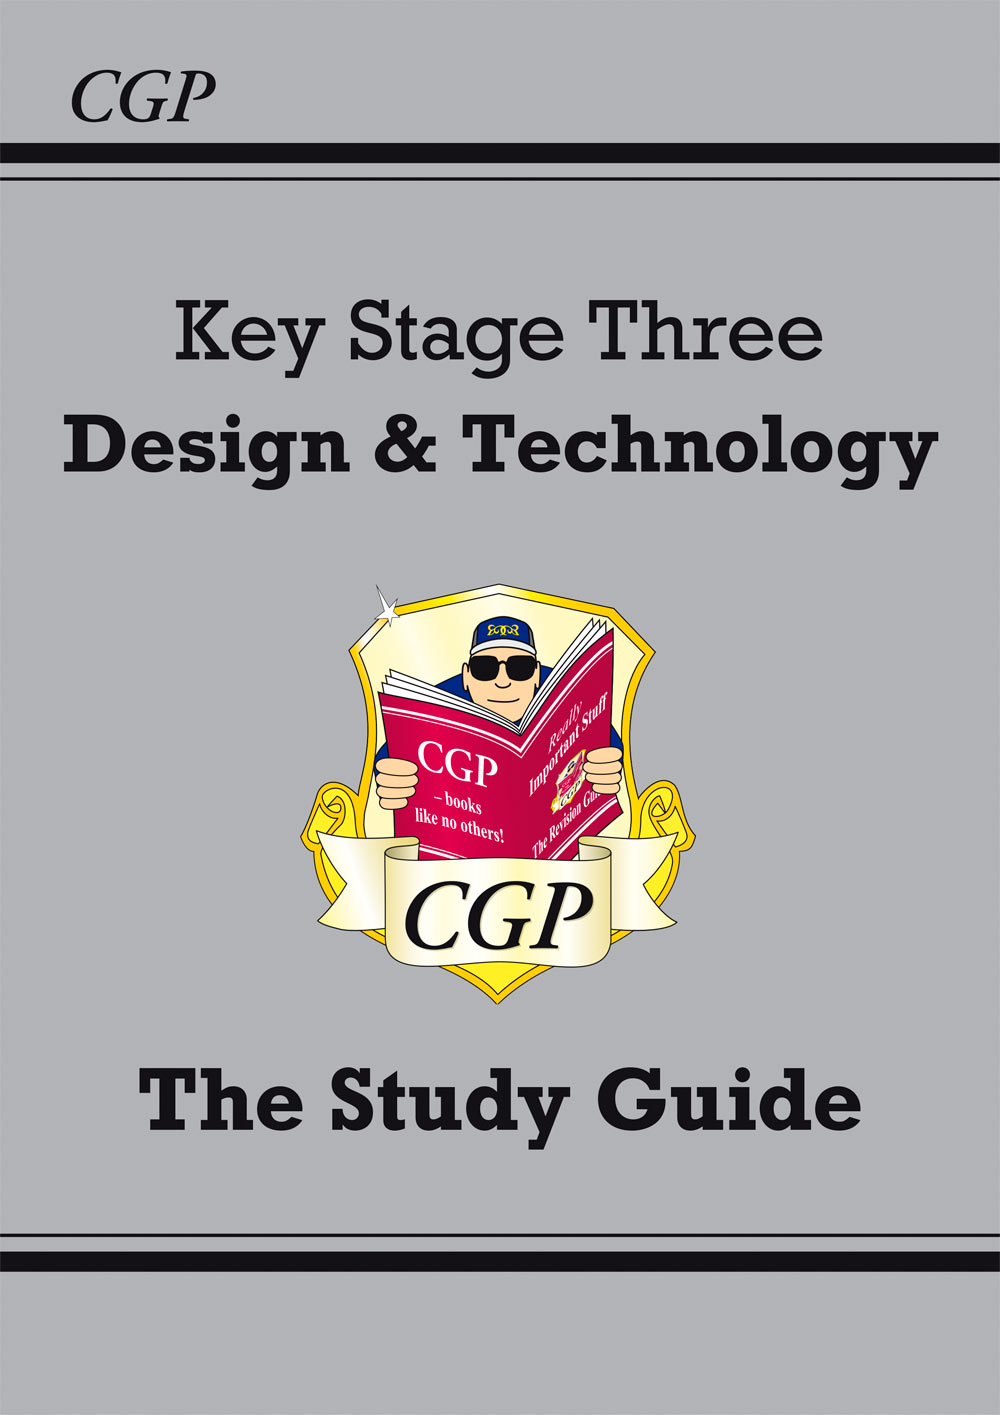 THR33 - KS3 Design & Technology Study Guide